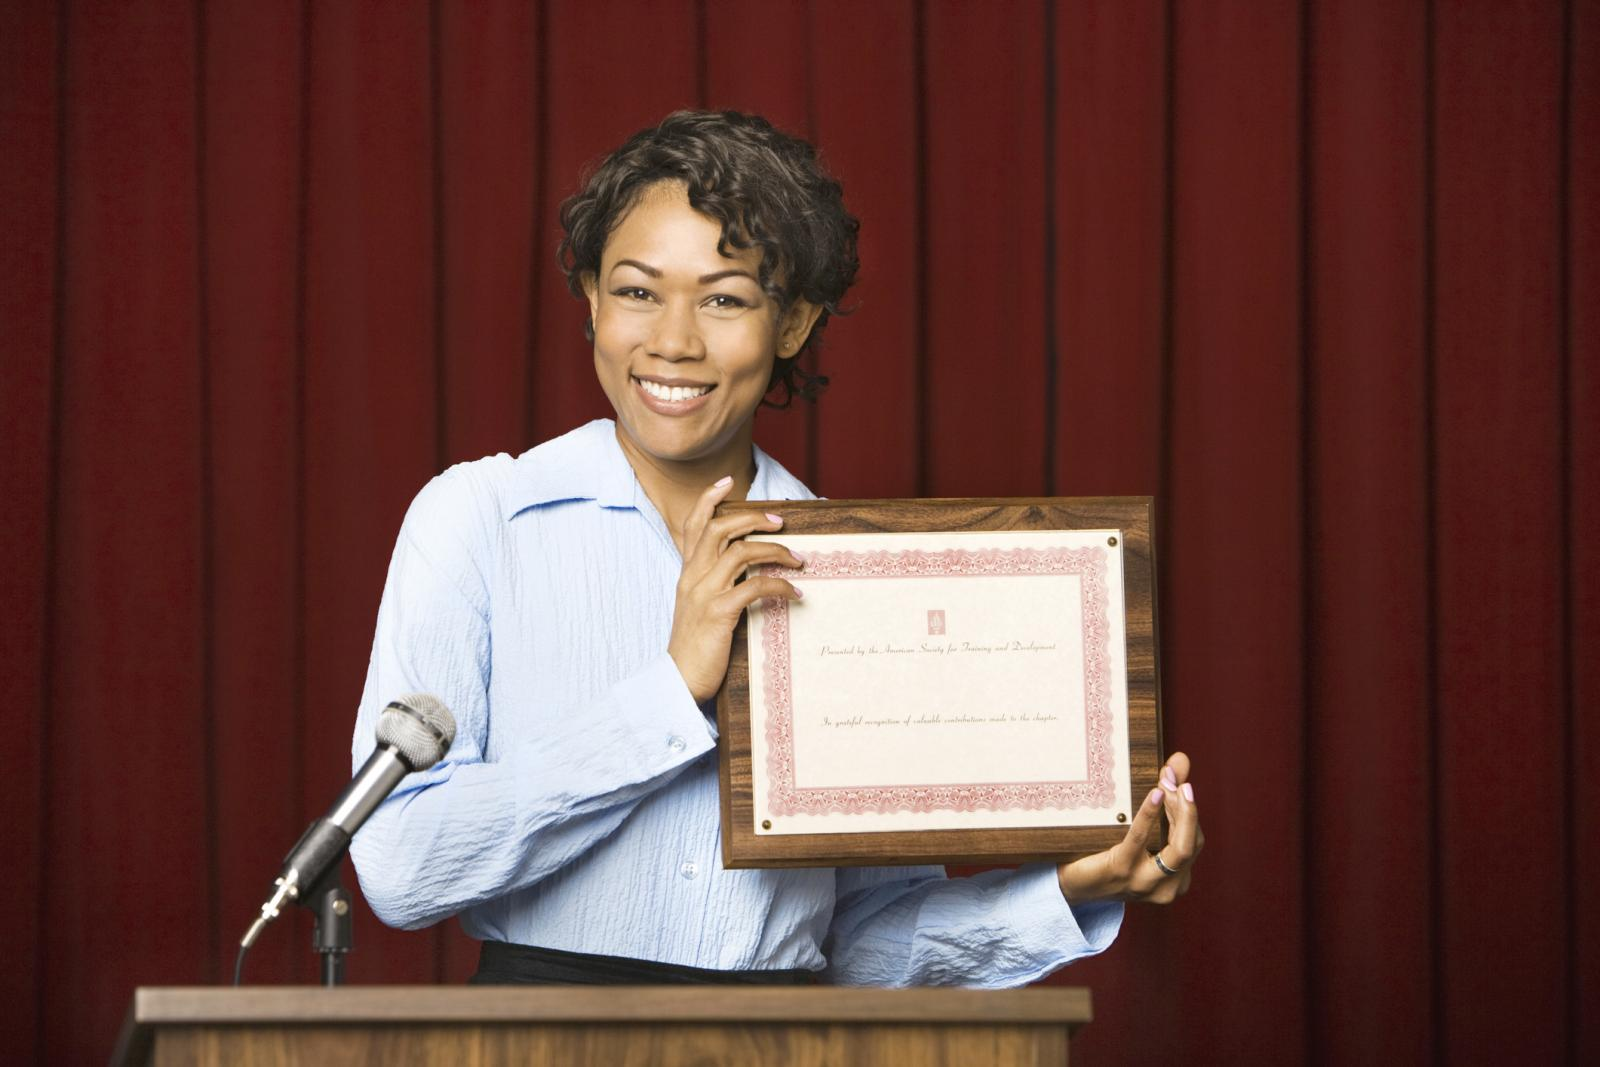 Worker being given an award certificate